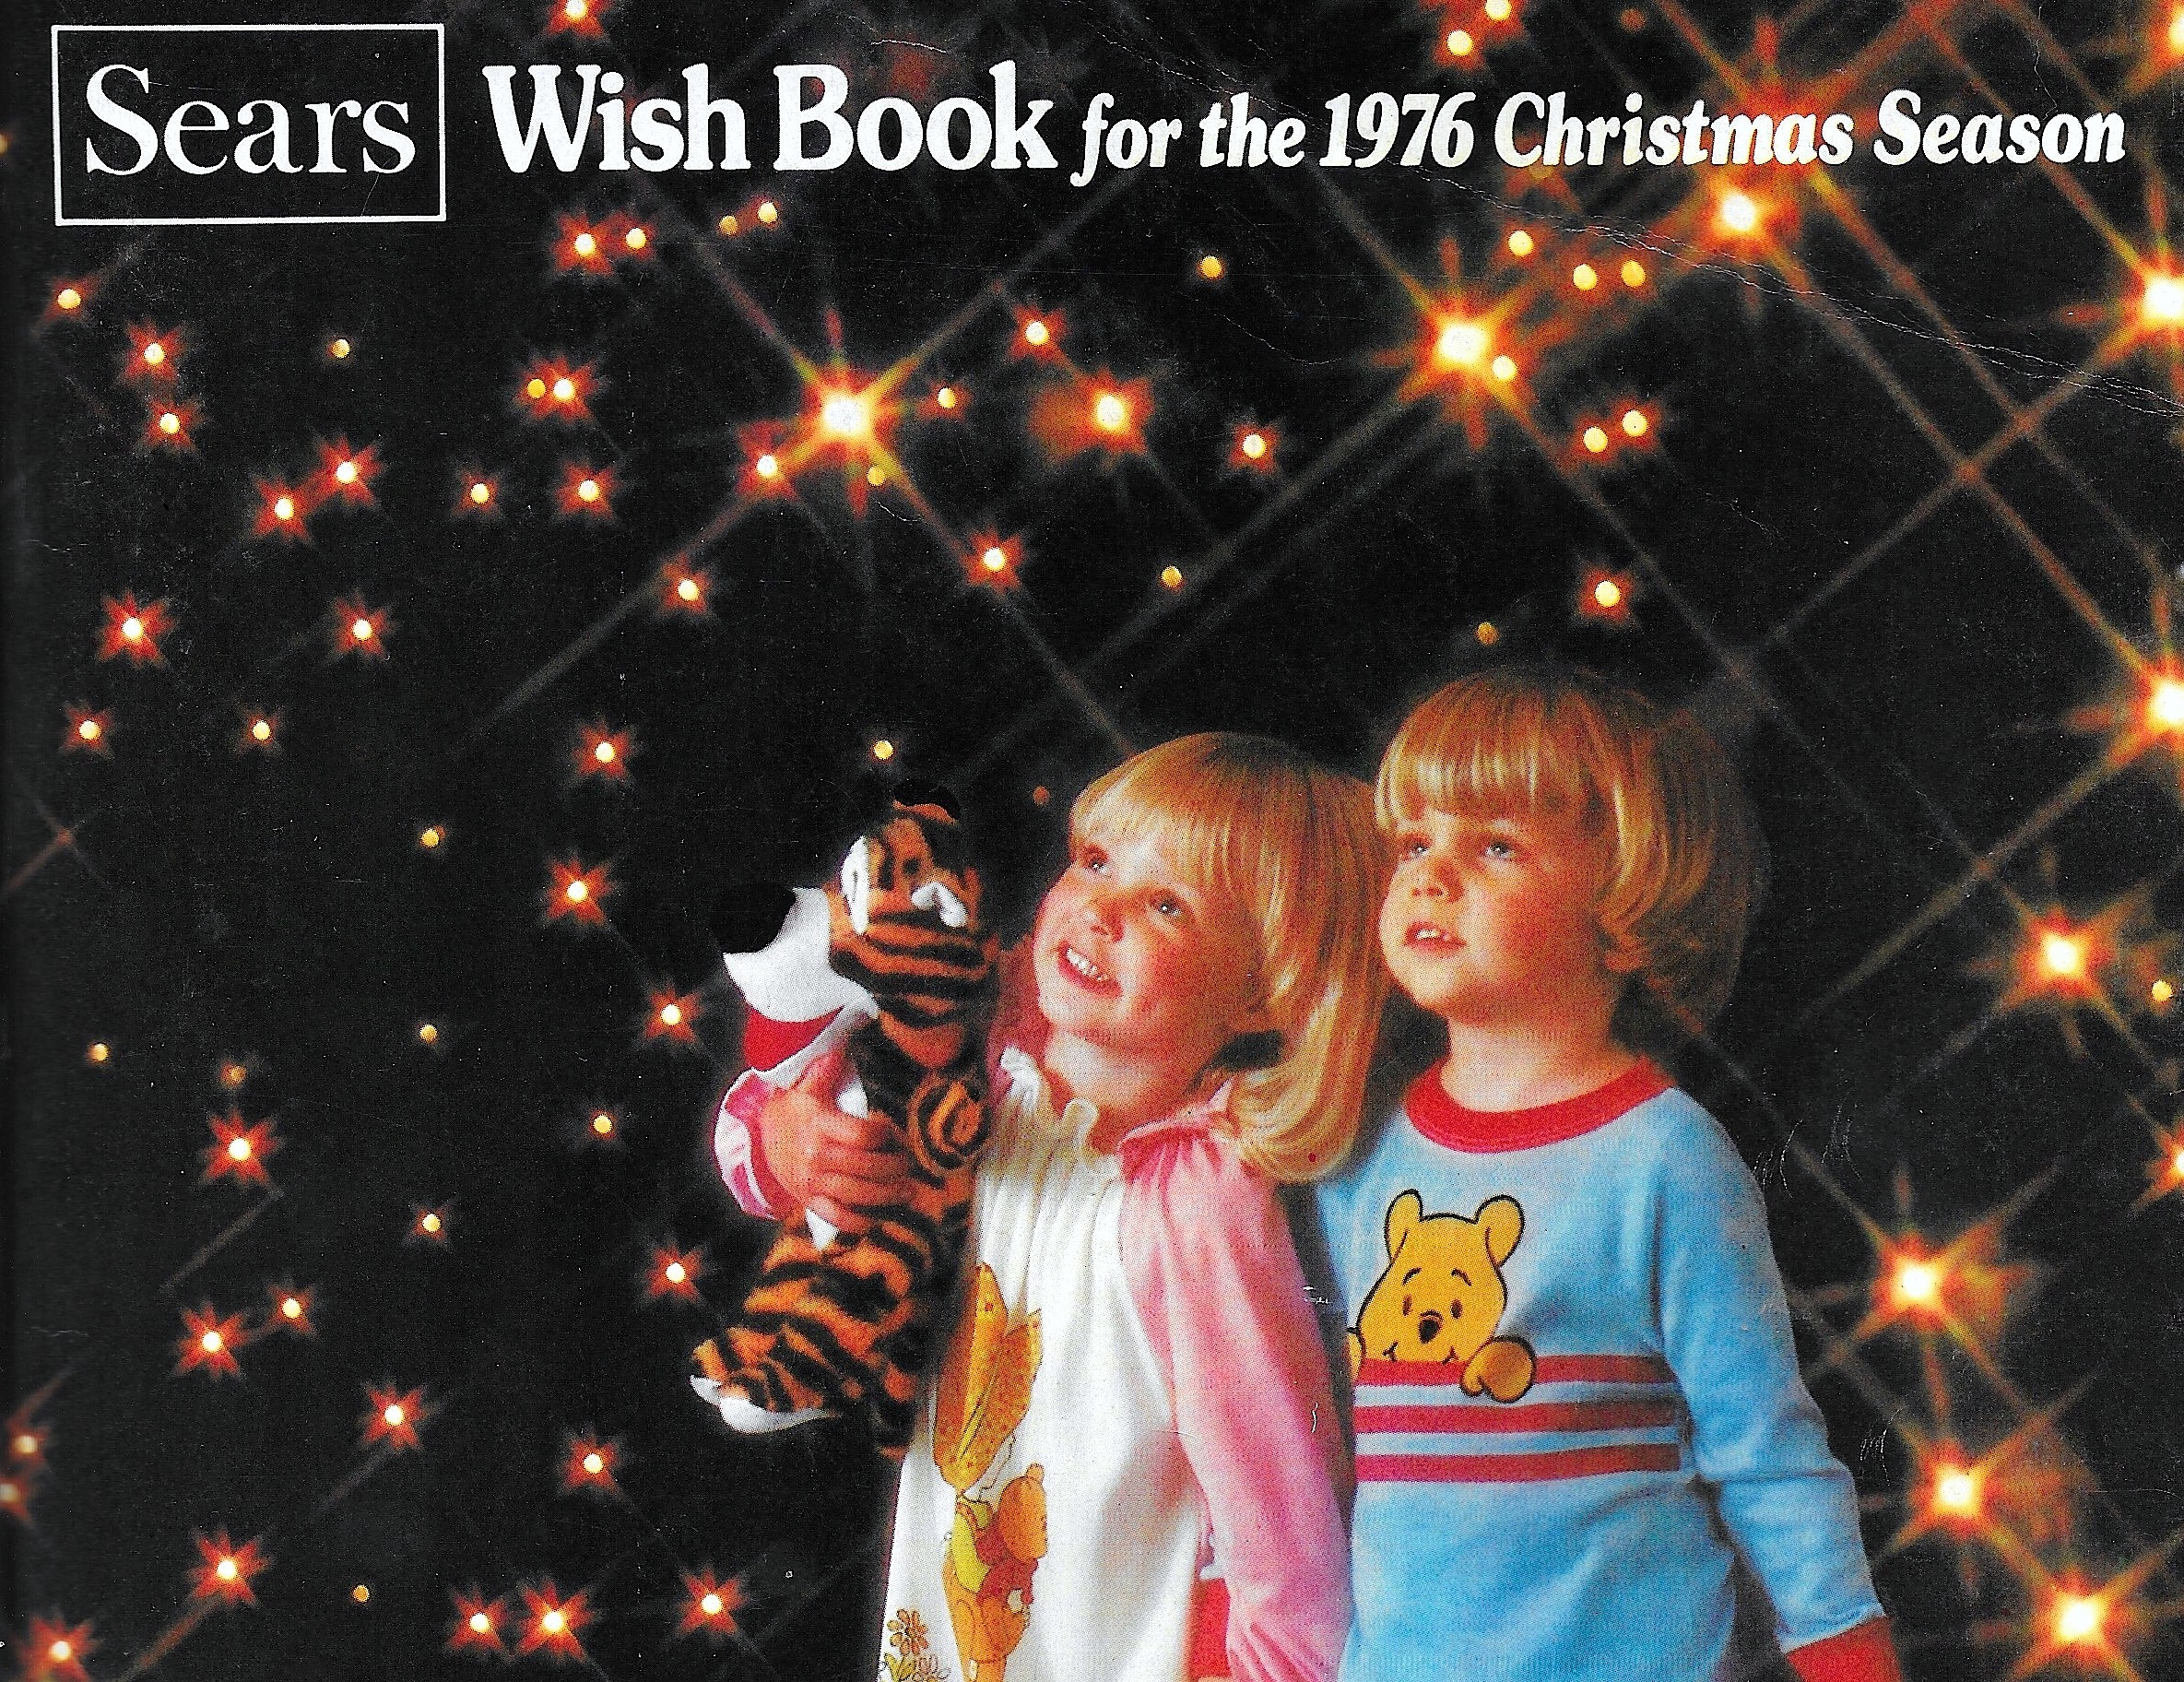 Literature of Desire: The 1976 Sears Christmas Wish Book – Rolf Potts